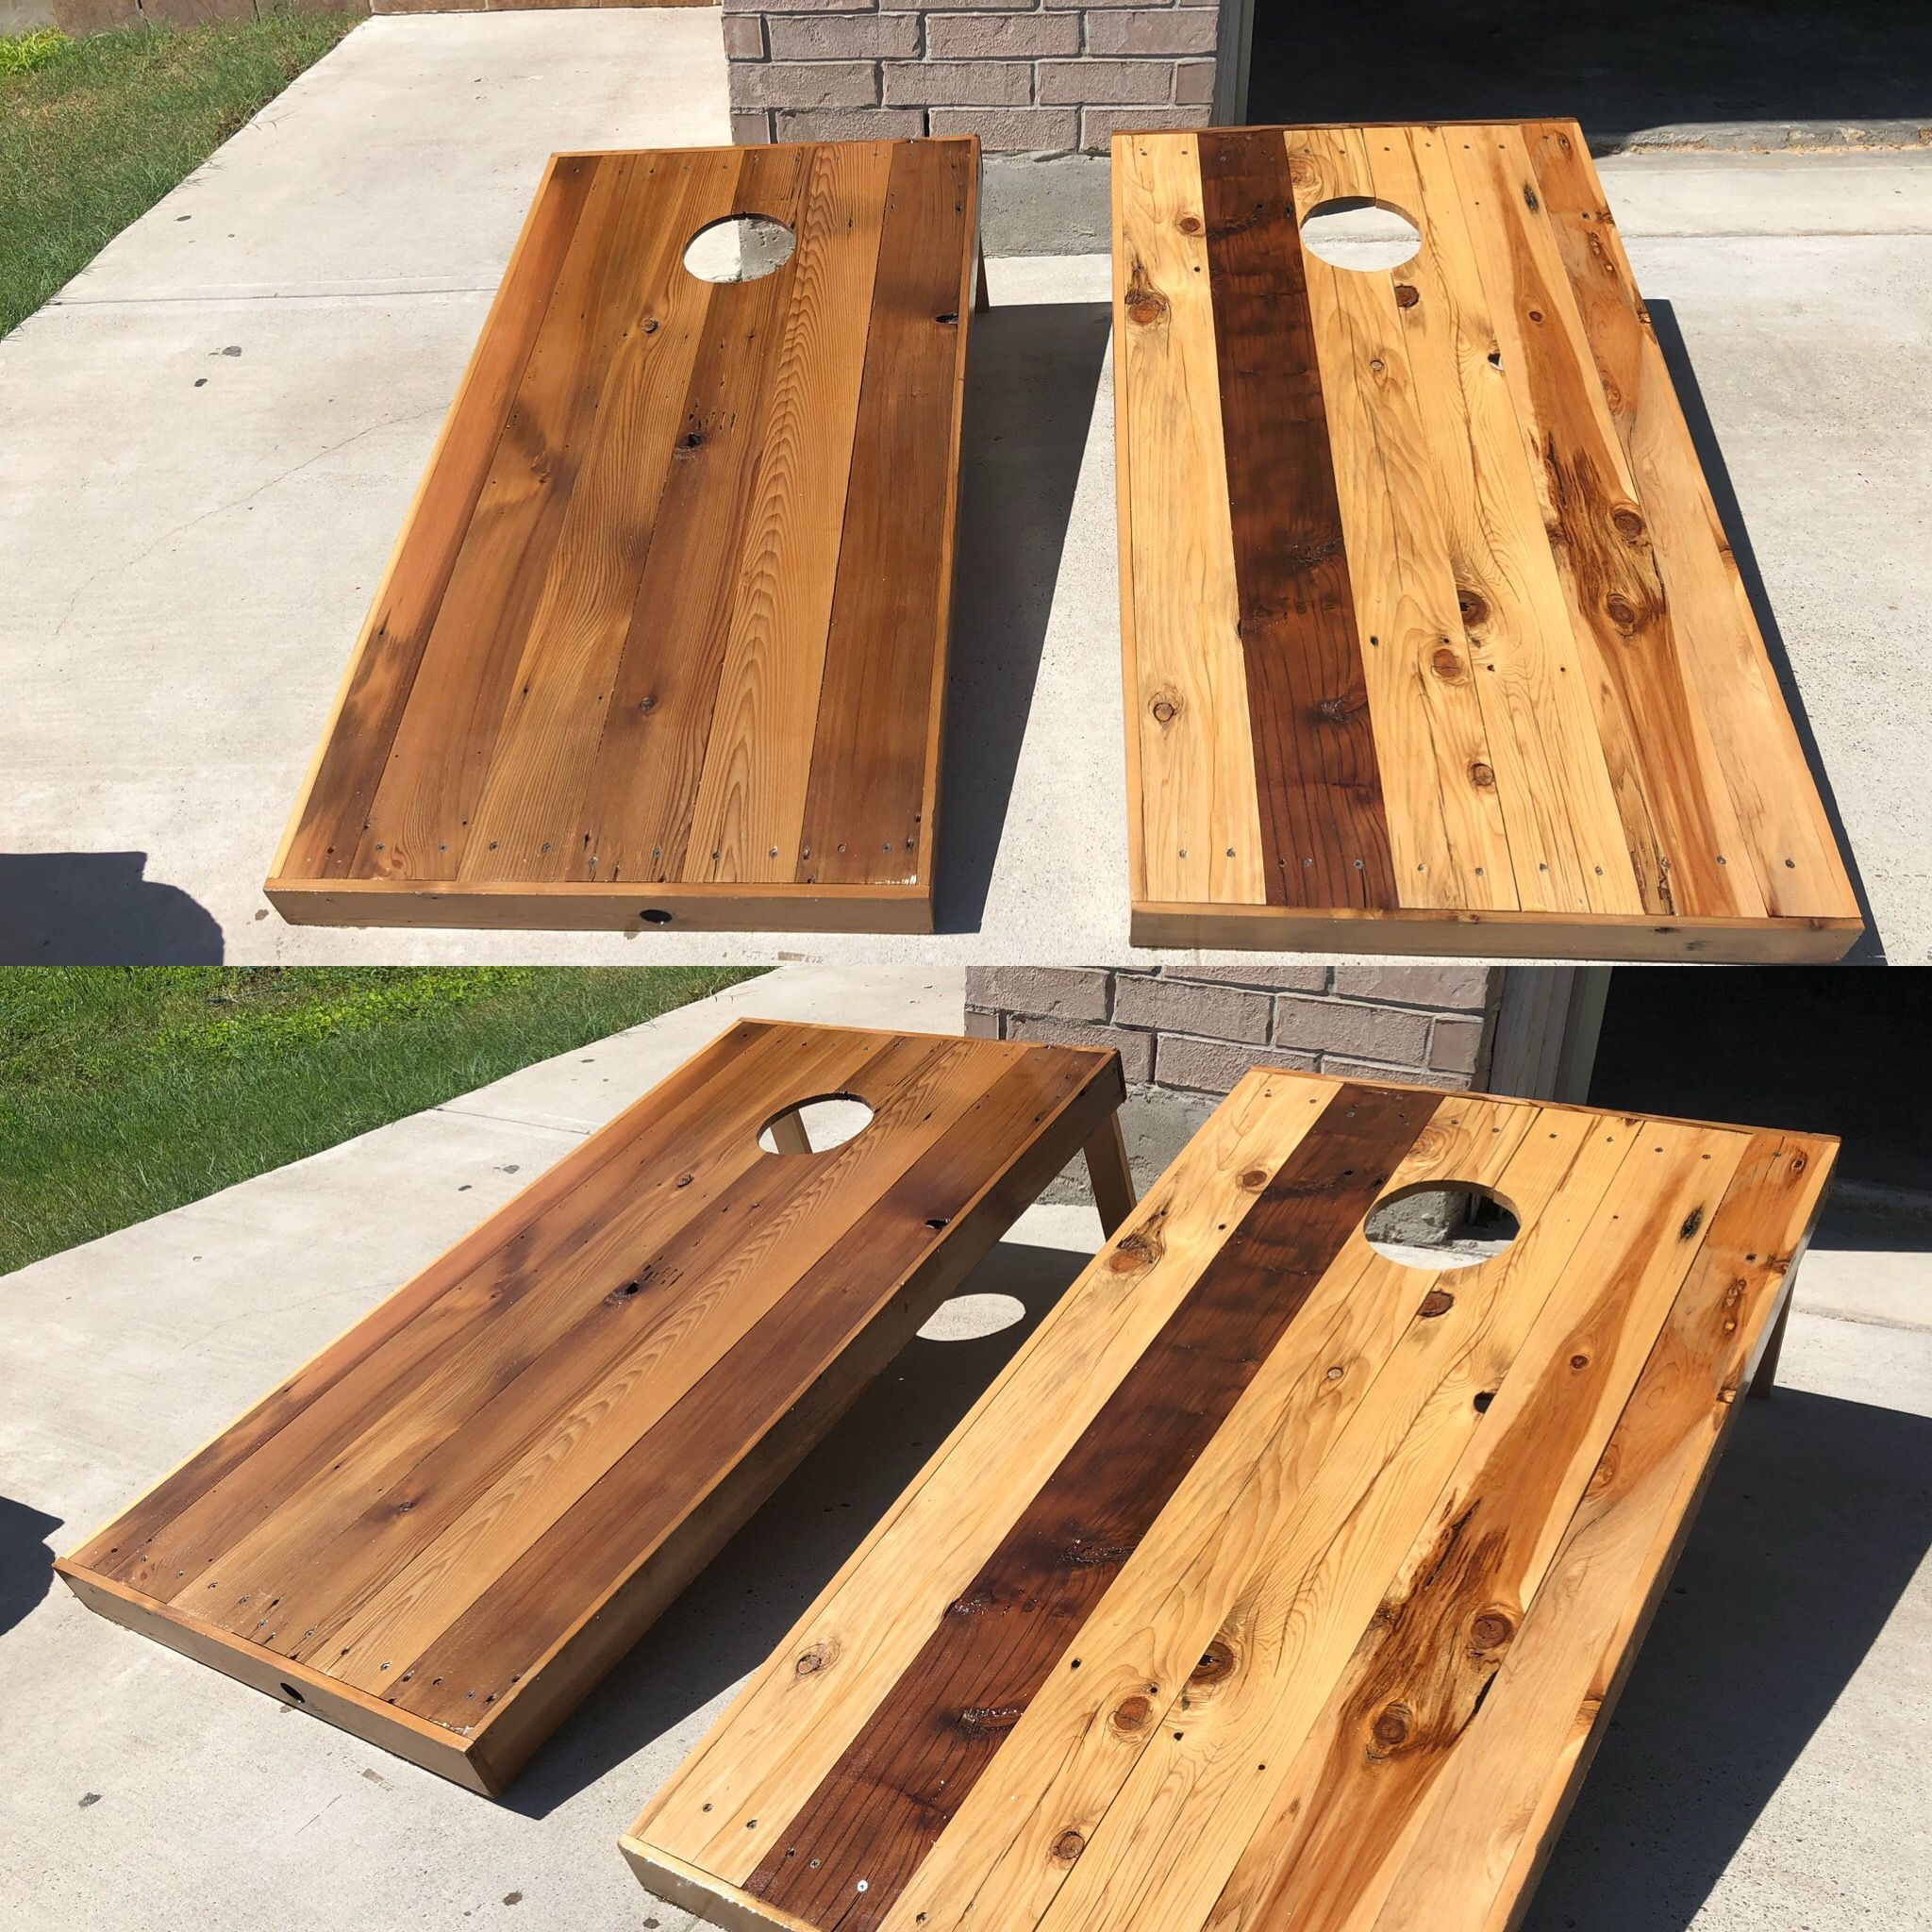 Corn hole boards made from cedar fence | Creative Pallet Designs by